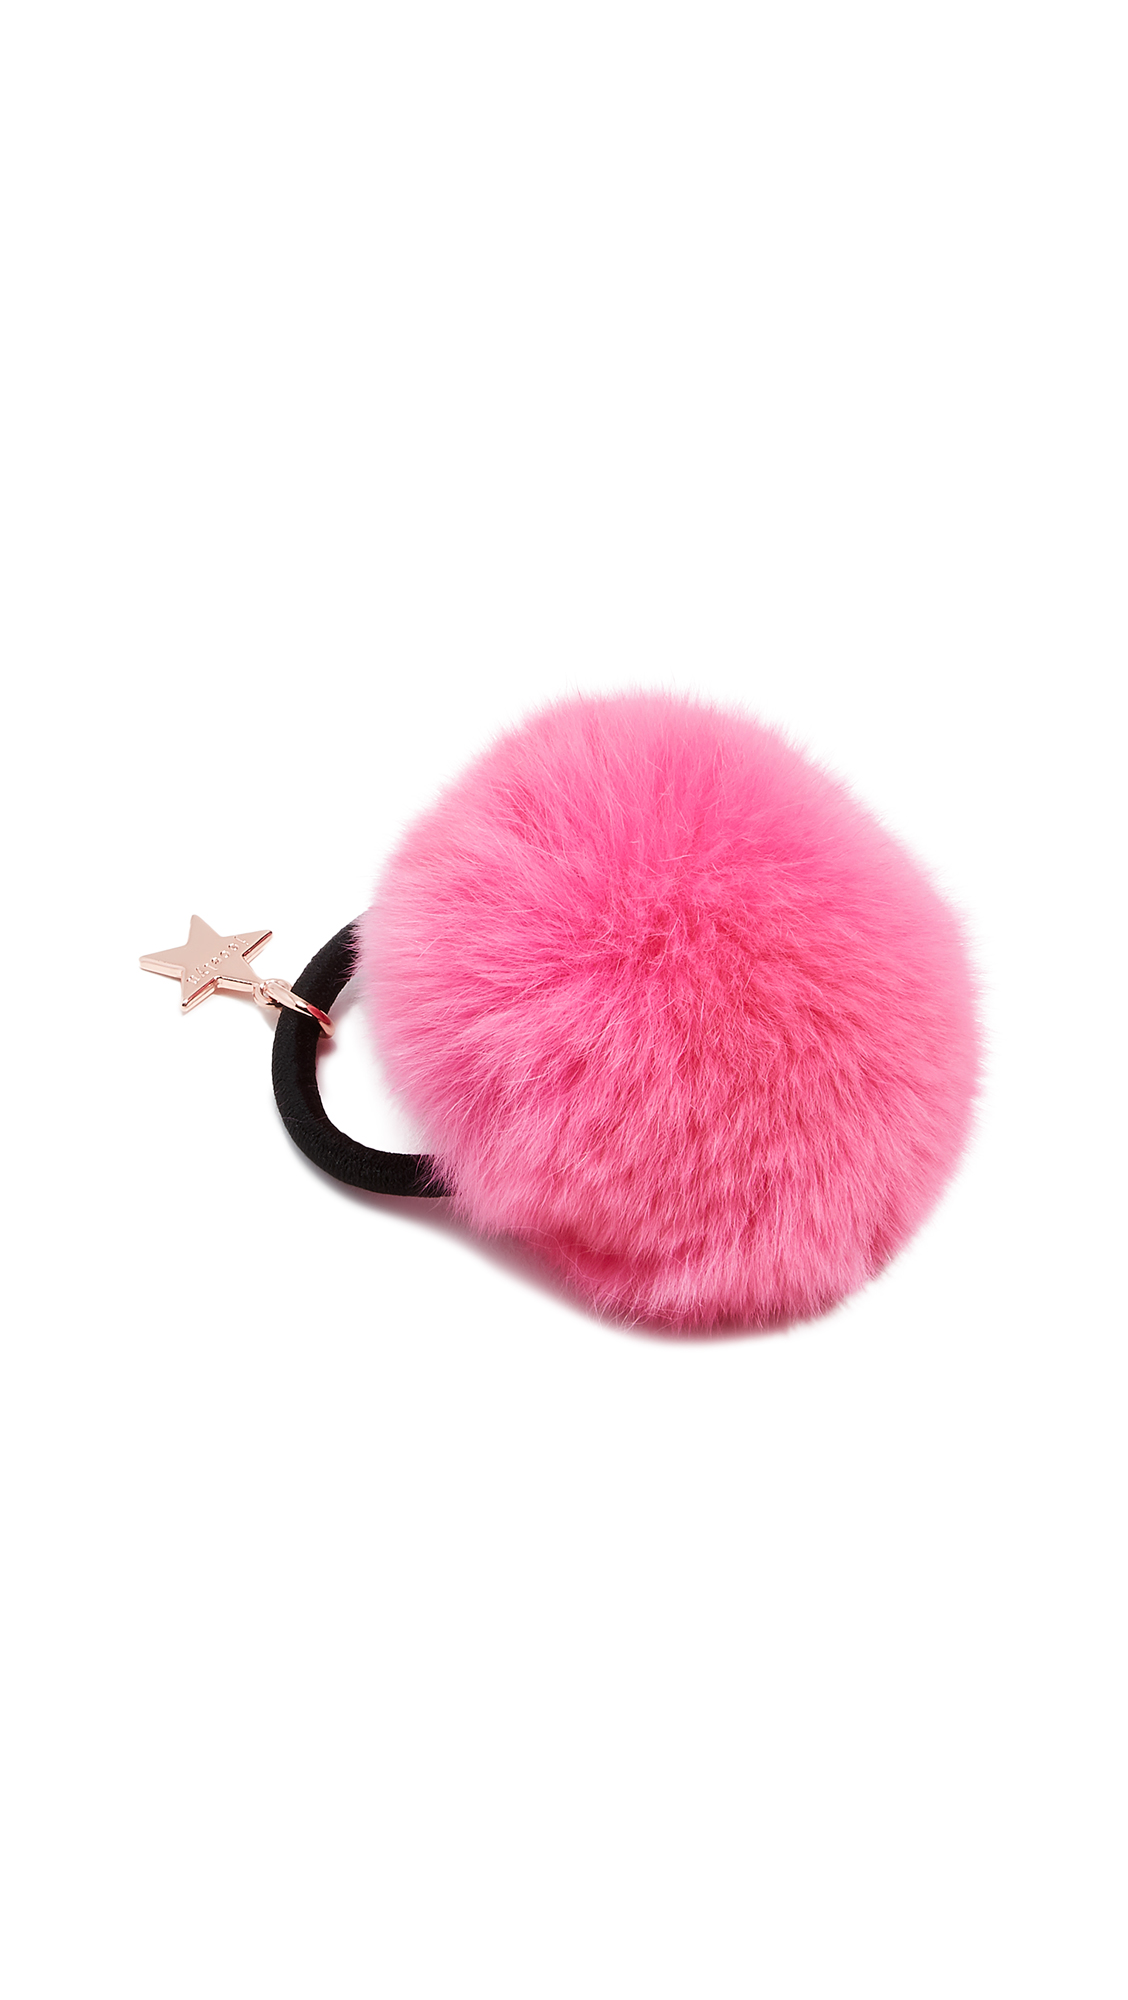 Rex Rabbit Fur Pom Pom Hair Tie in Neon Pink